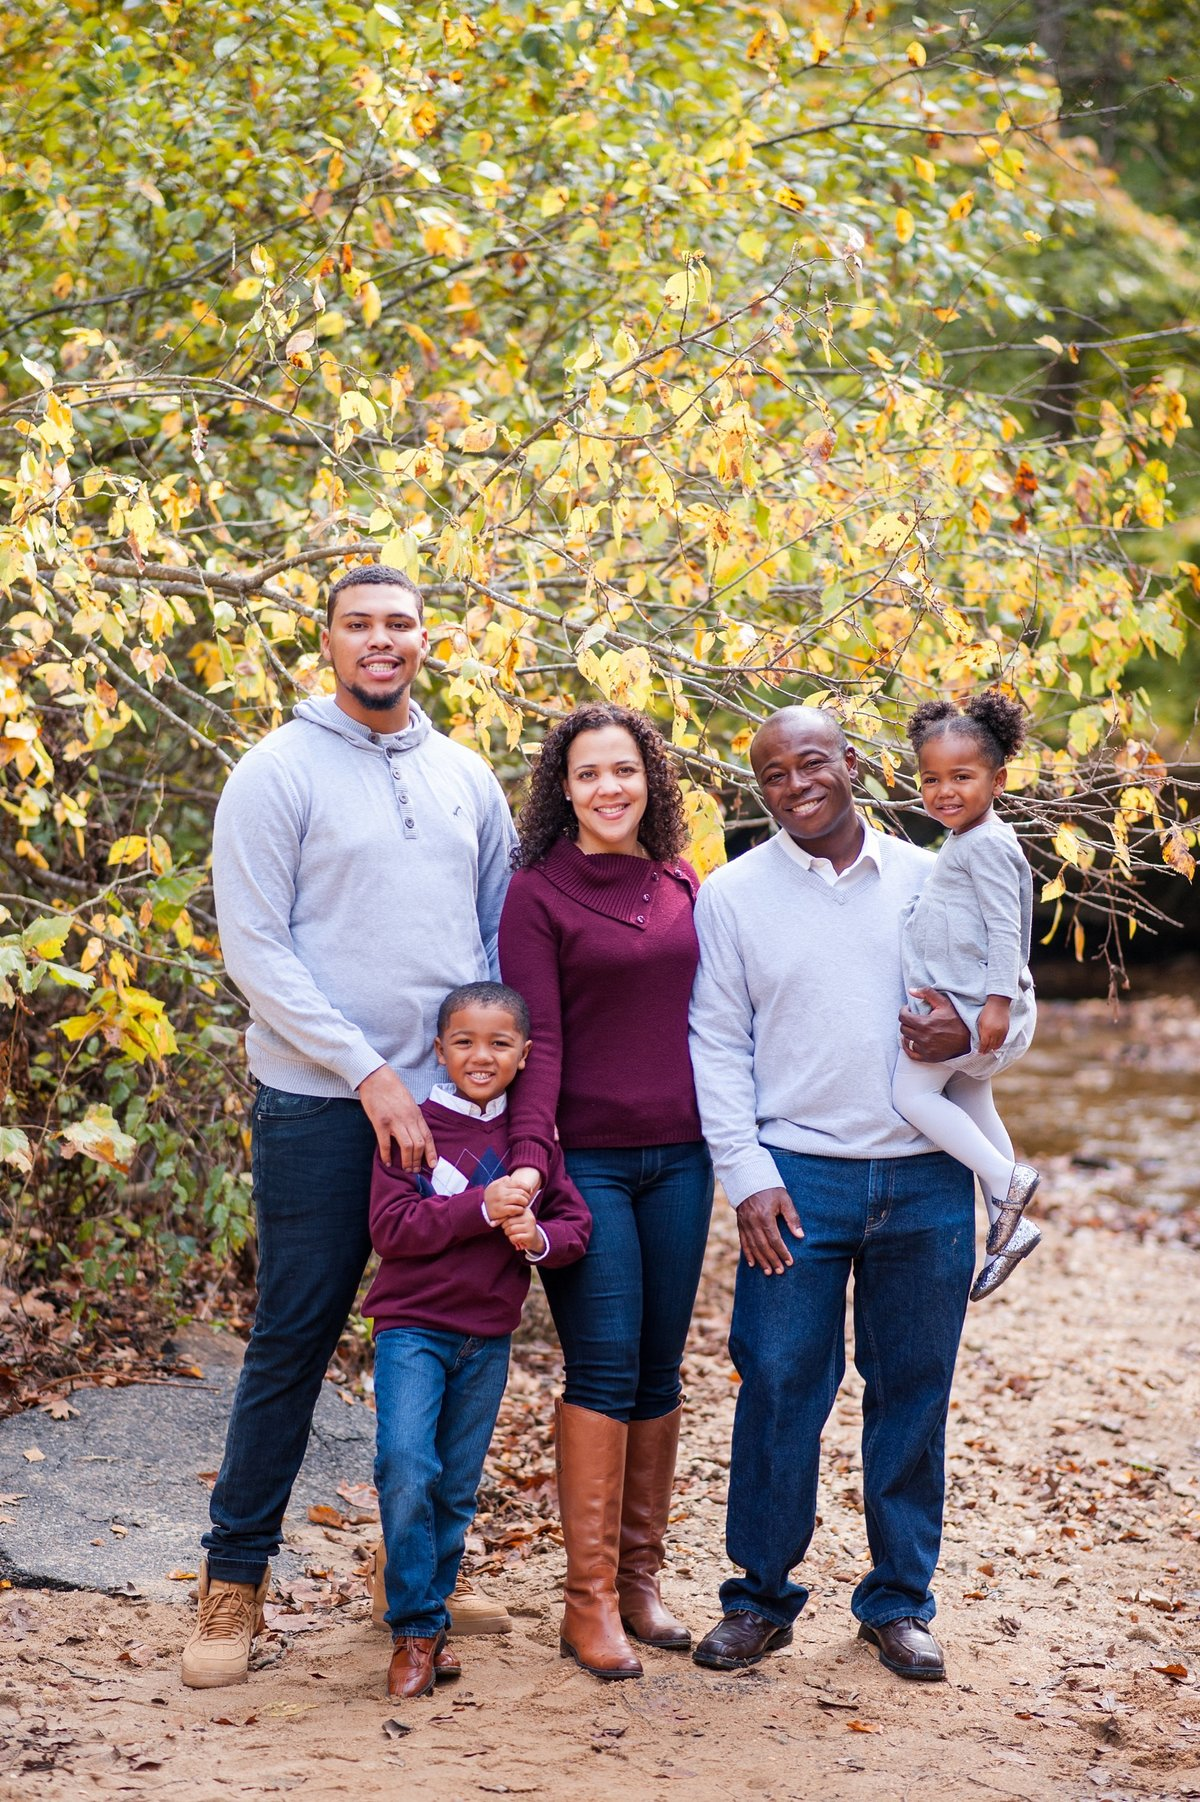 fredericksburg fall family portrait session